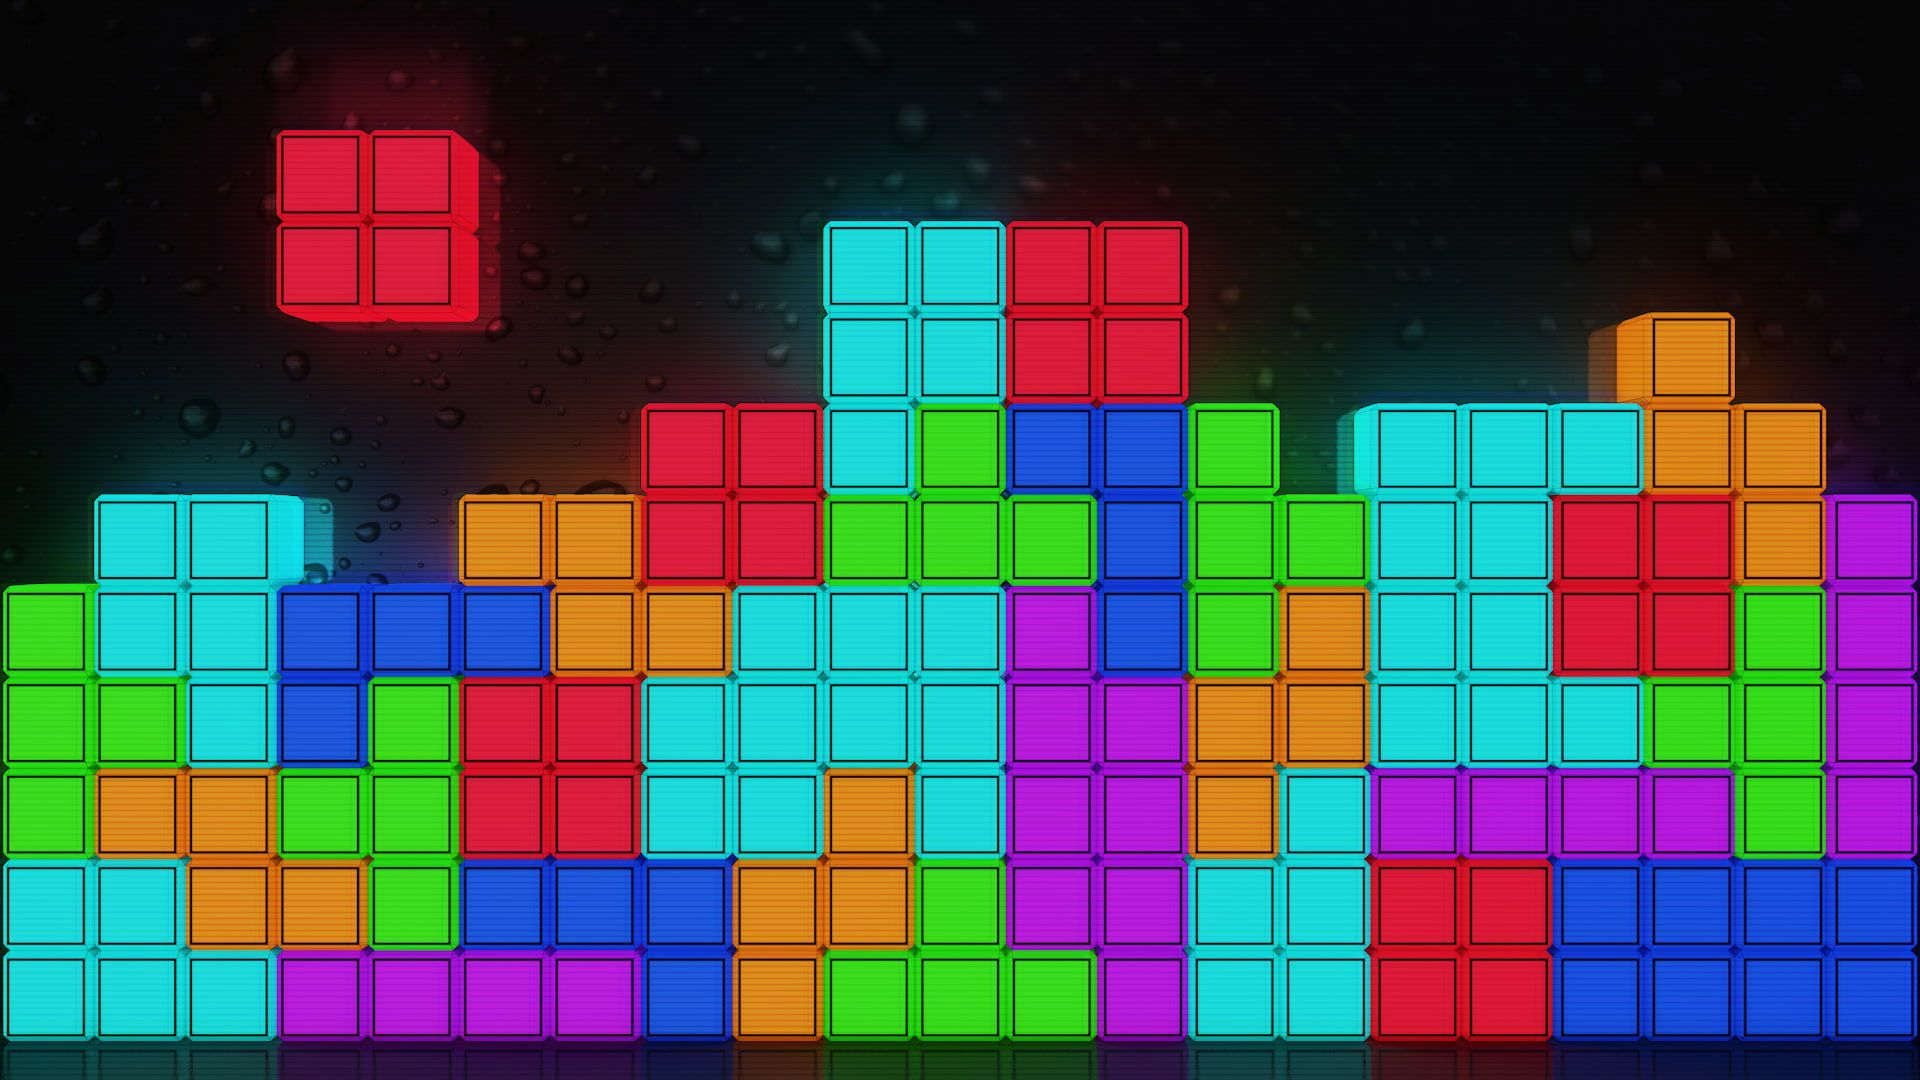 Tetris Wallpaper Vhs Abstract Minimalism Colorful Multi Colored Black And Blue Wallpaper Red Abstract Painting Red Artwork